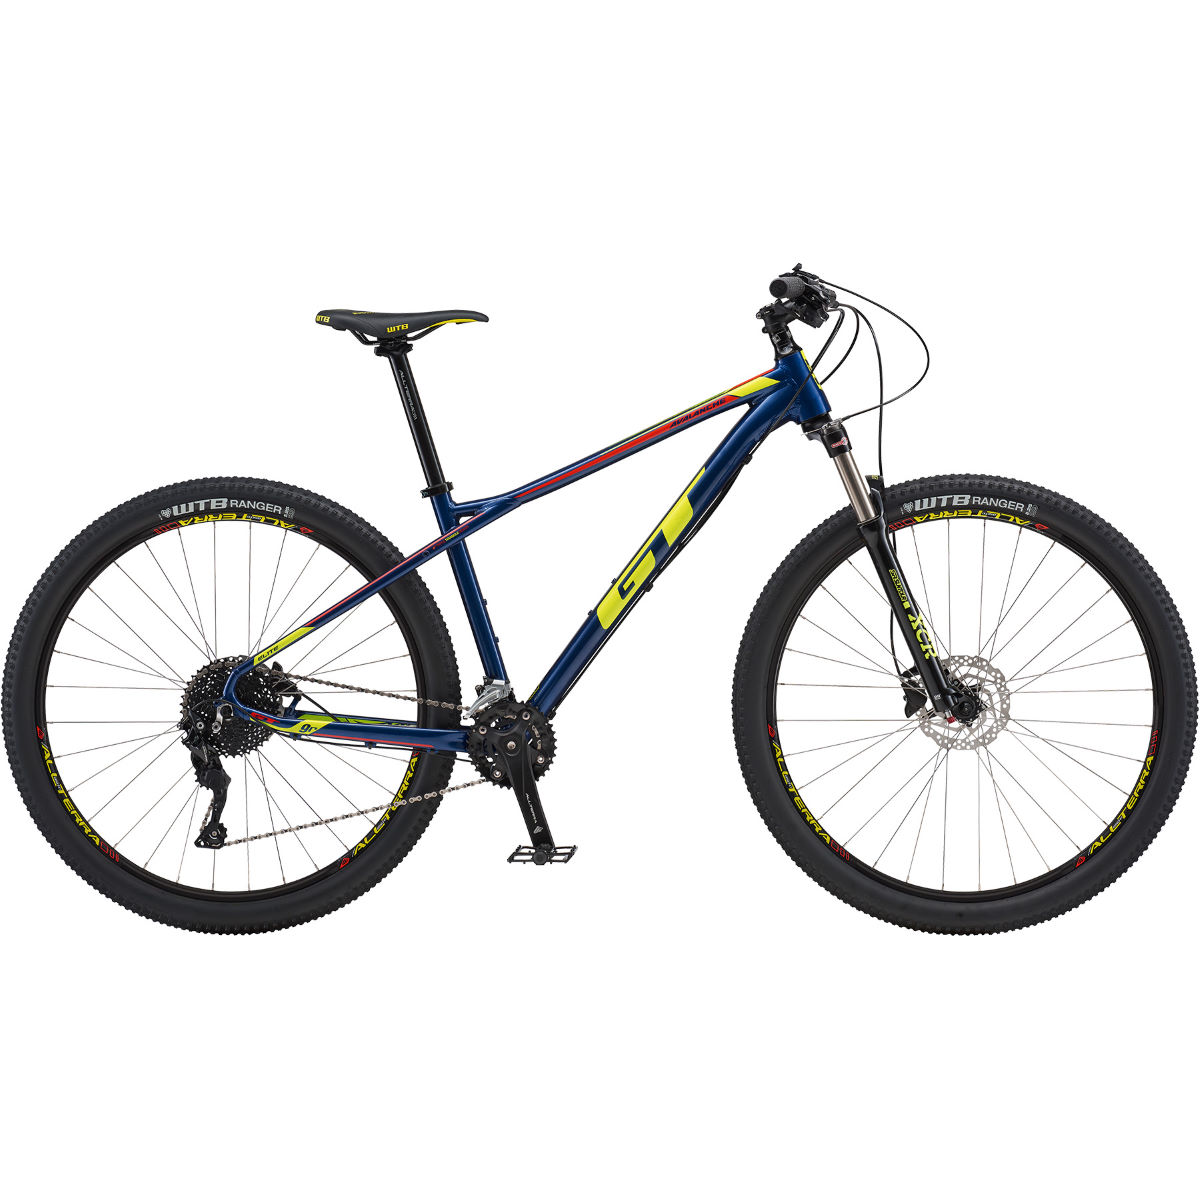 VTT semi-rigide GT Avalanche Elite 29 - Large Stock Bike Bleu marine